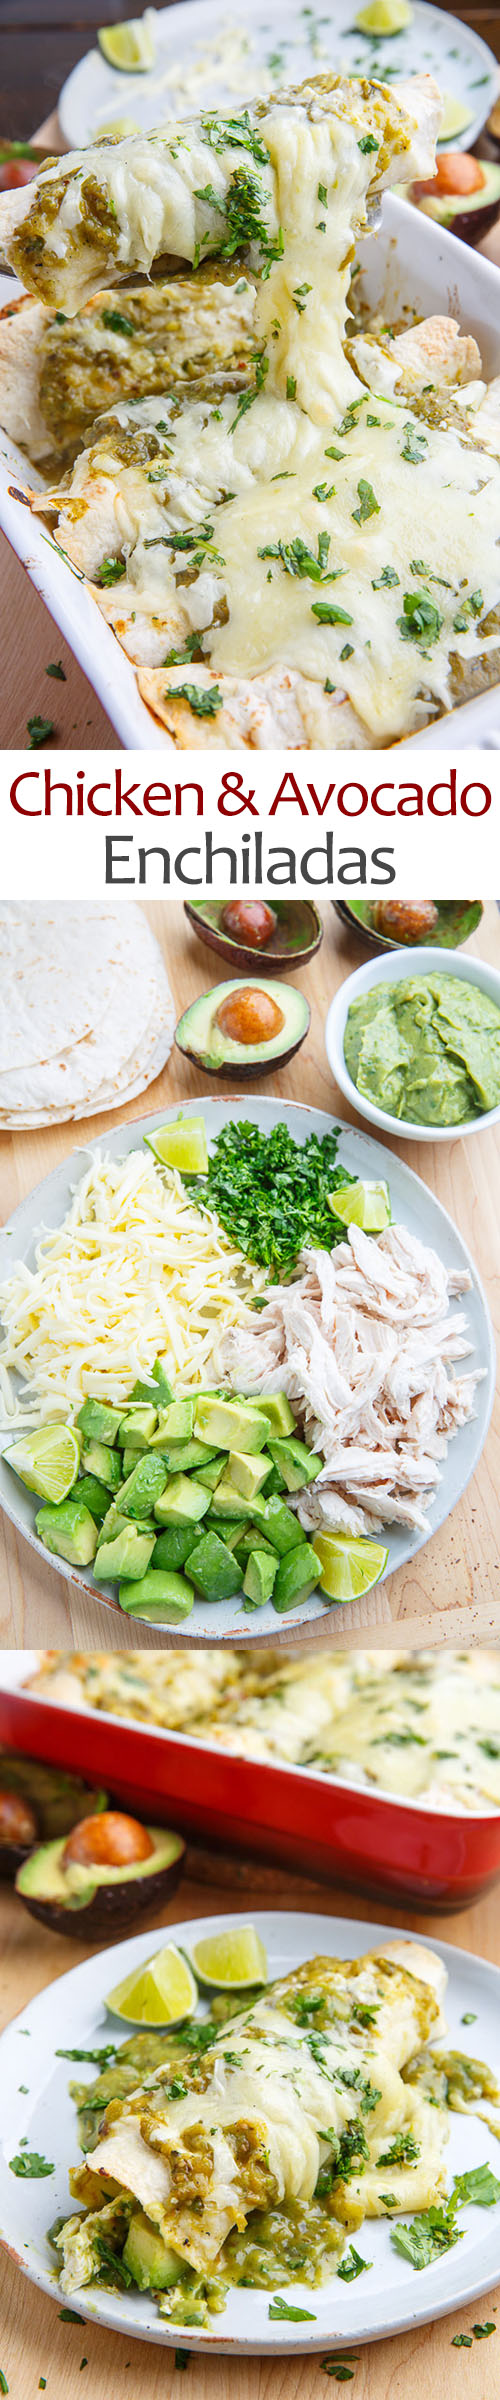 Chicken and Avocado Enchiladas